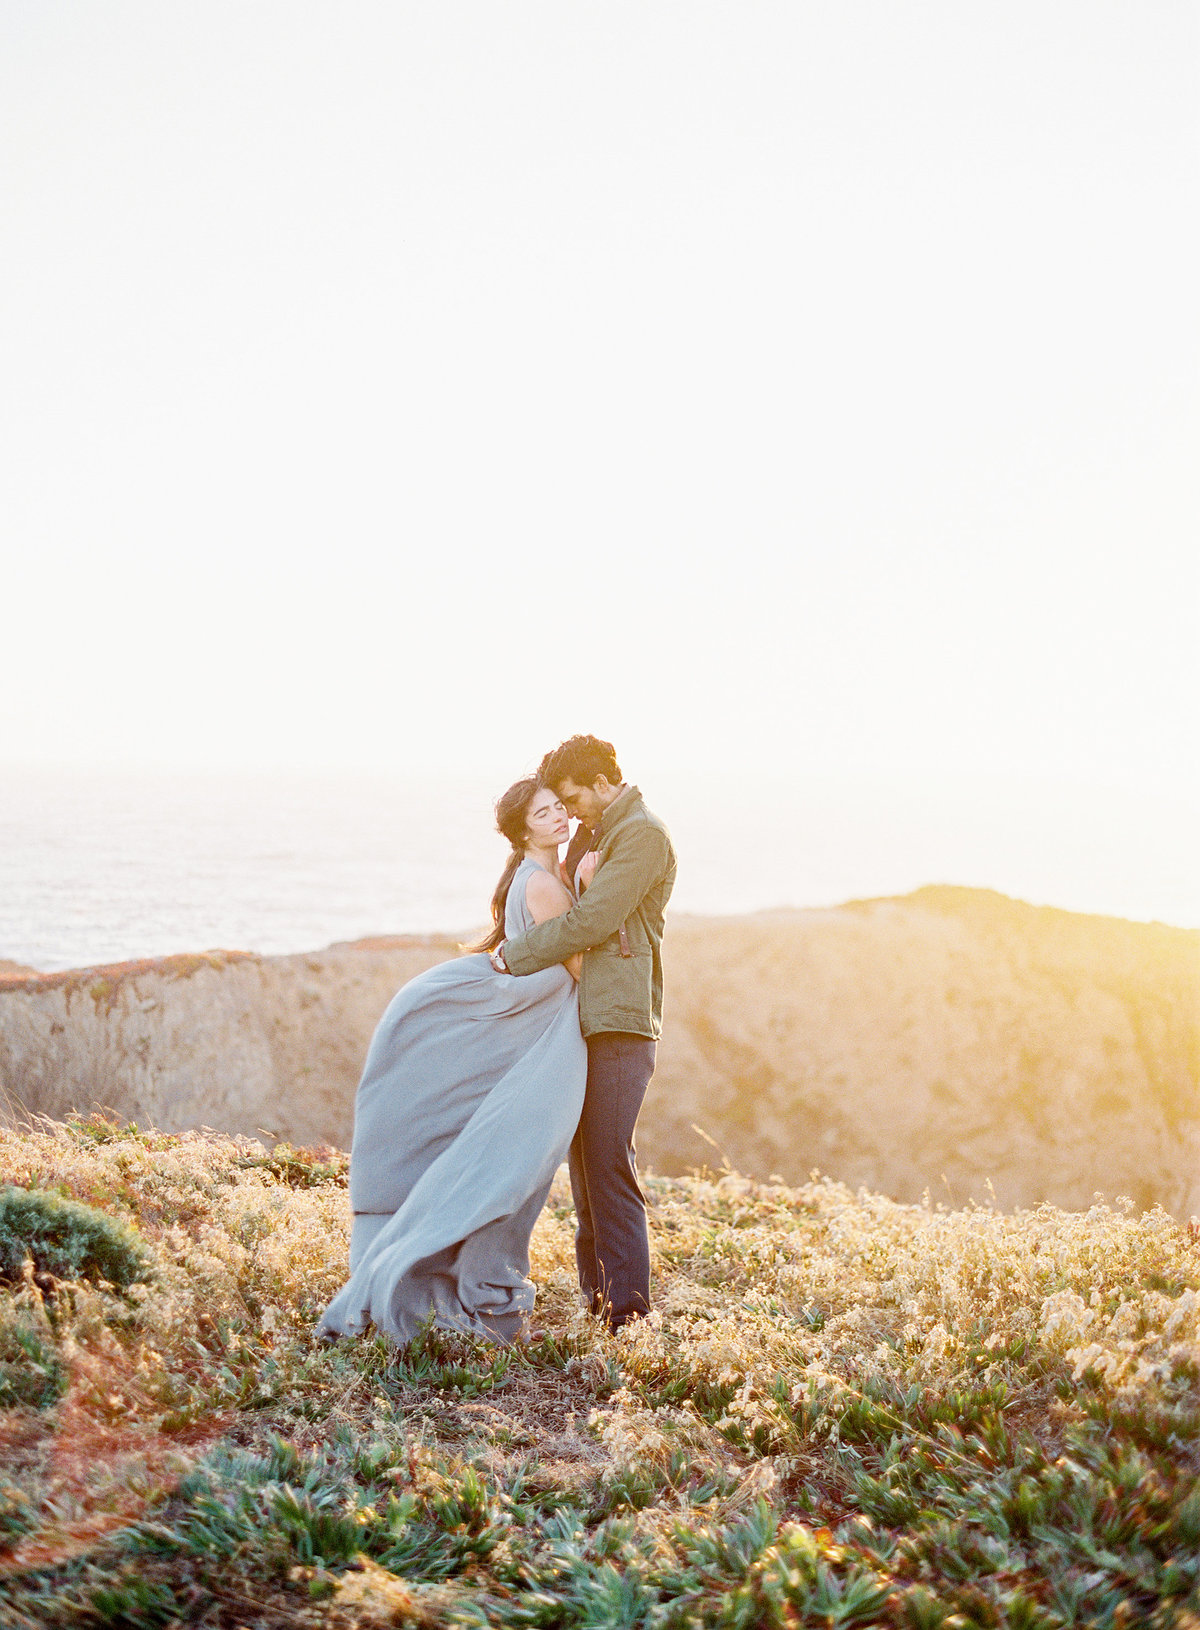 elk+beachside+wedding+editorial+by+lauren+peele+photography51